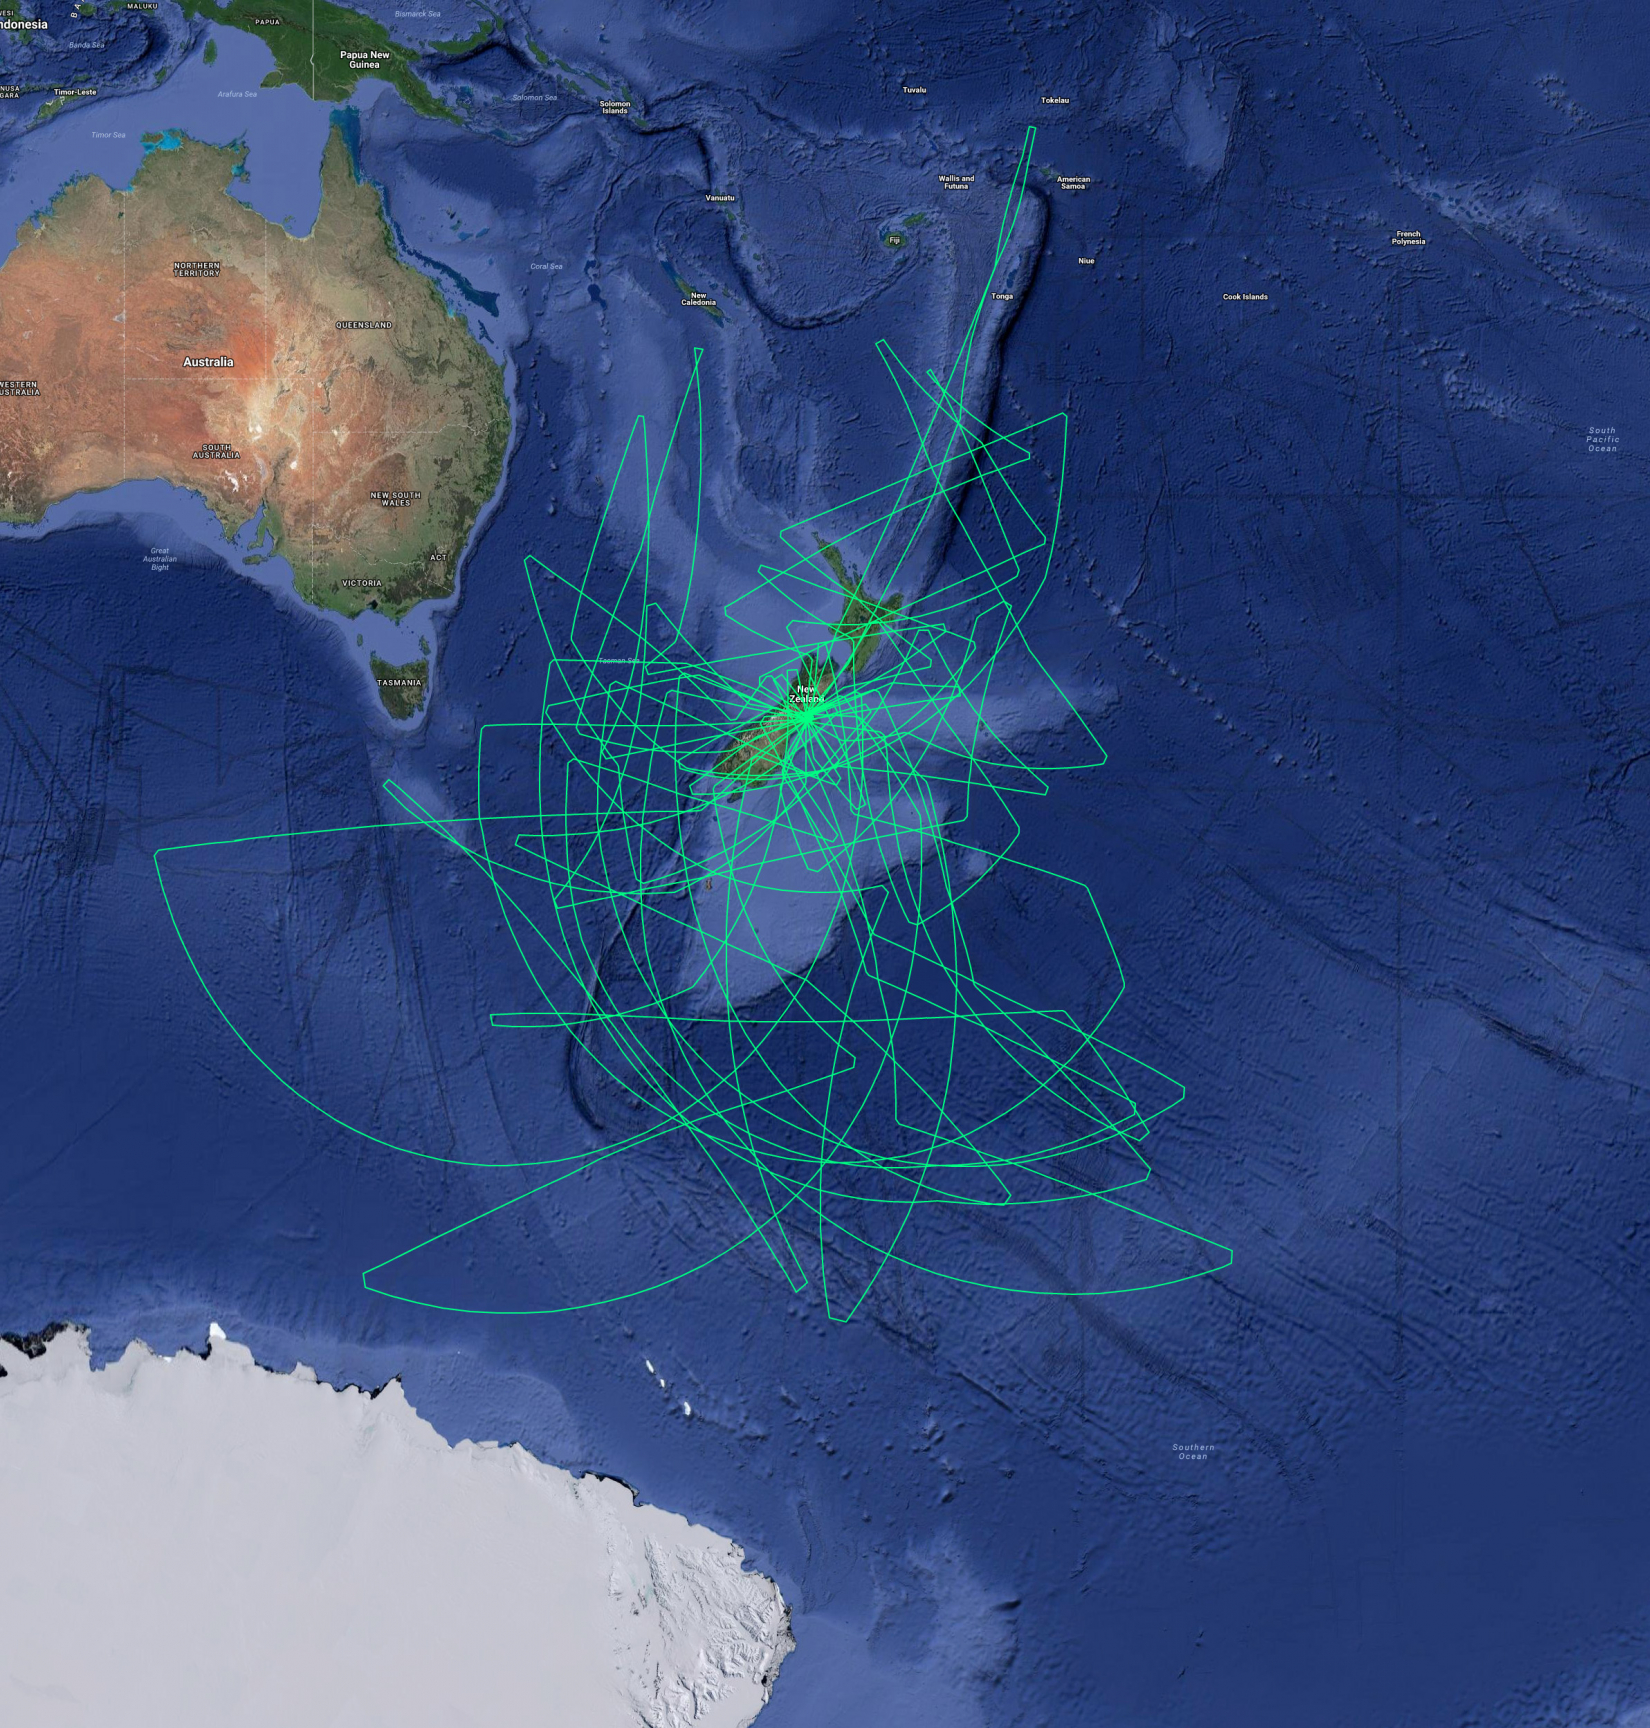 SOFIA deployment flight paths overlaid on the southern oceans